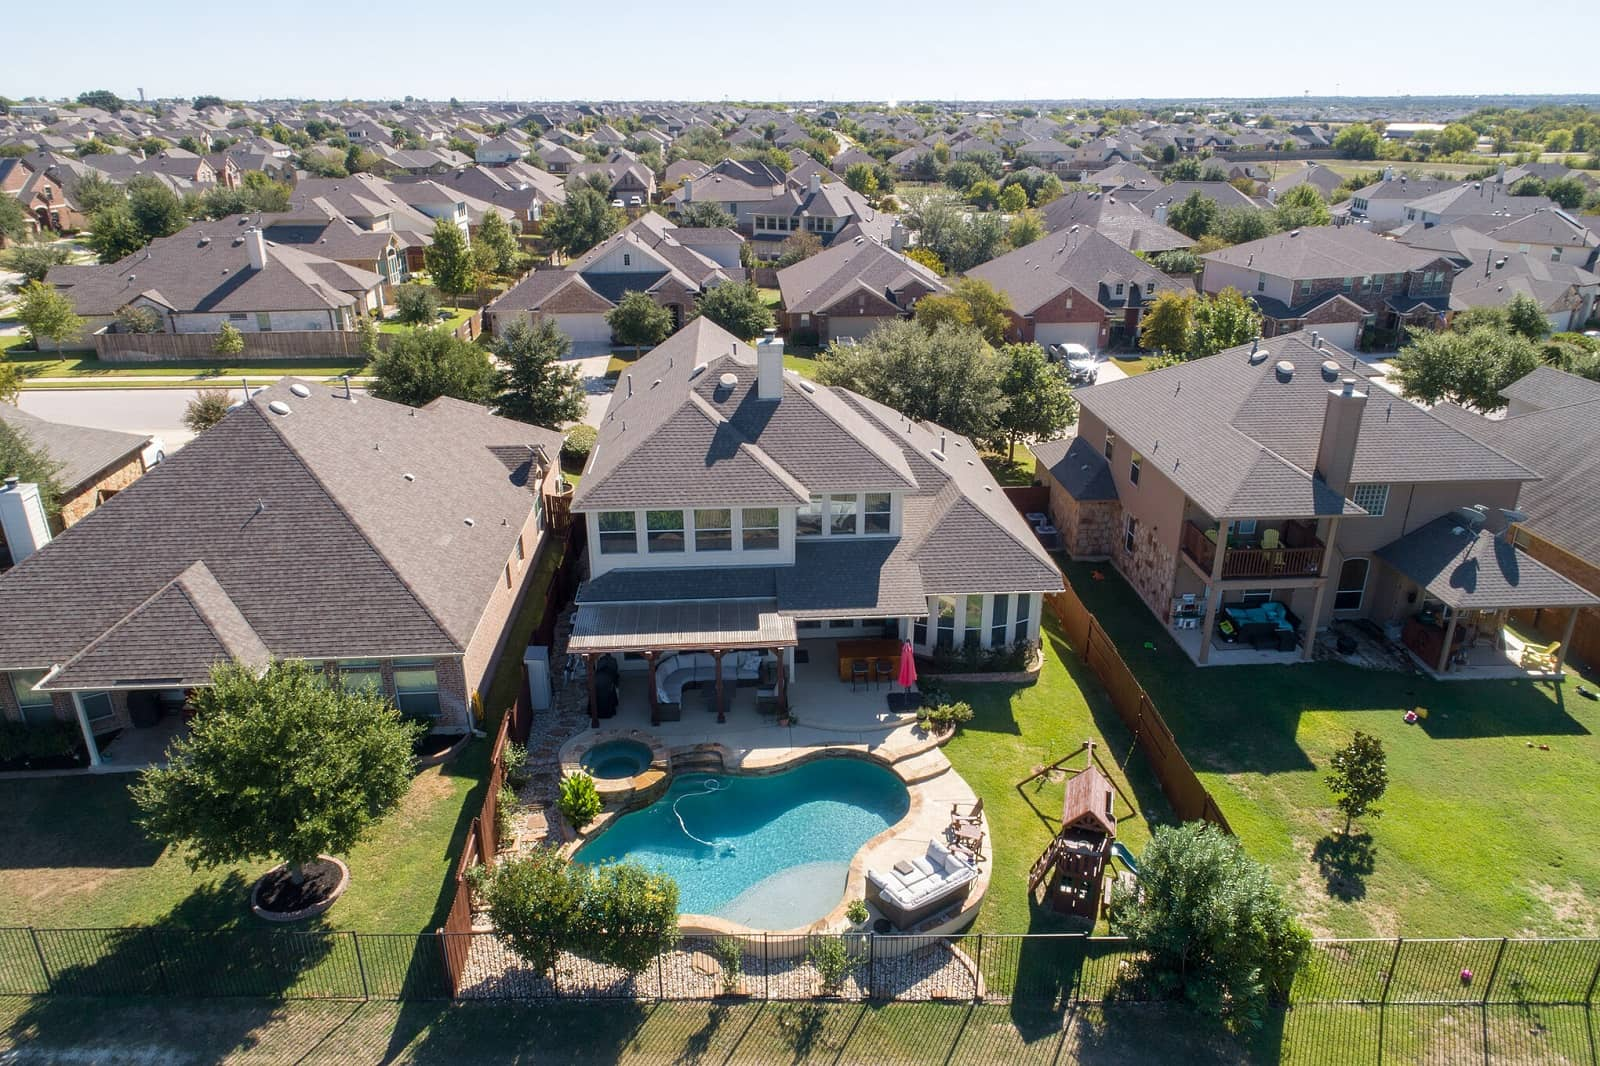 Real Estate Photography in Round Rock - TX - Aerial View